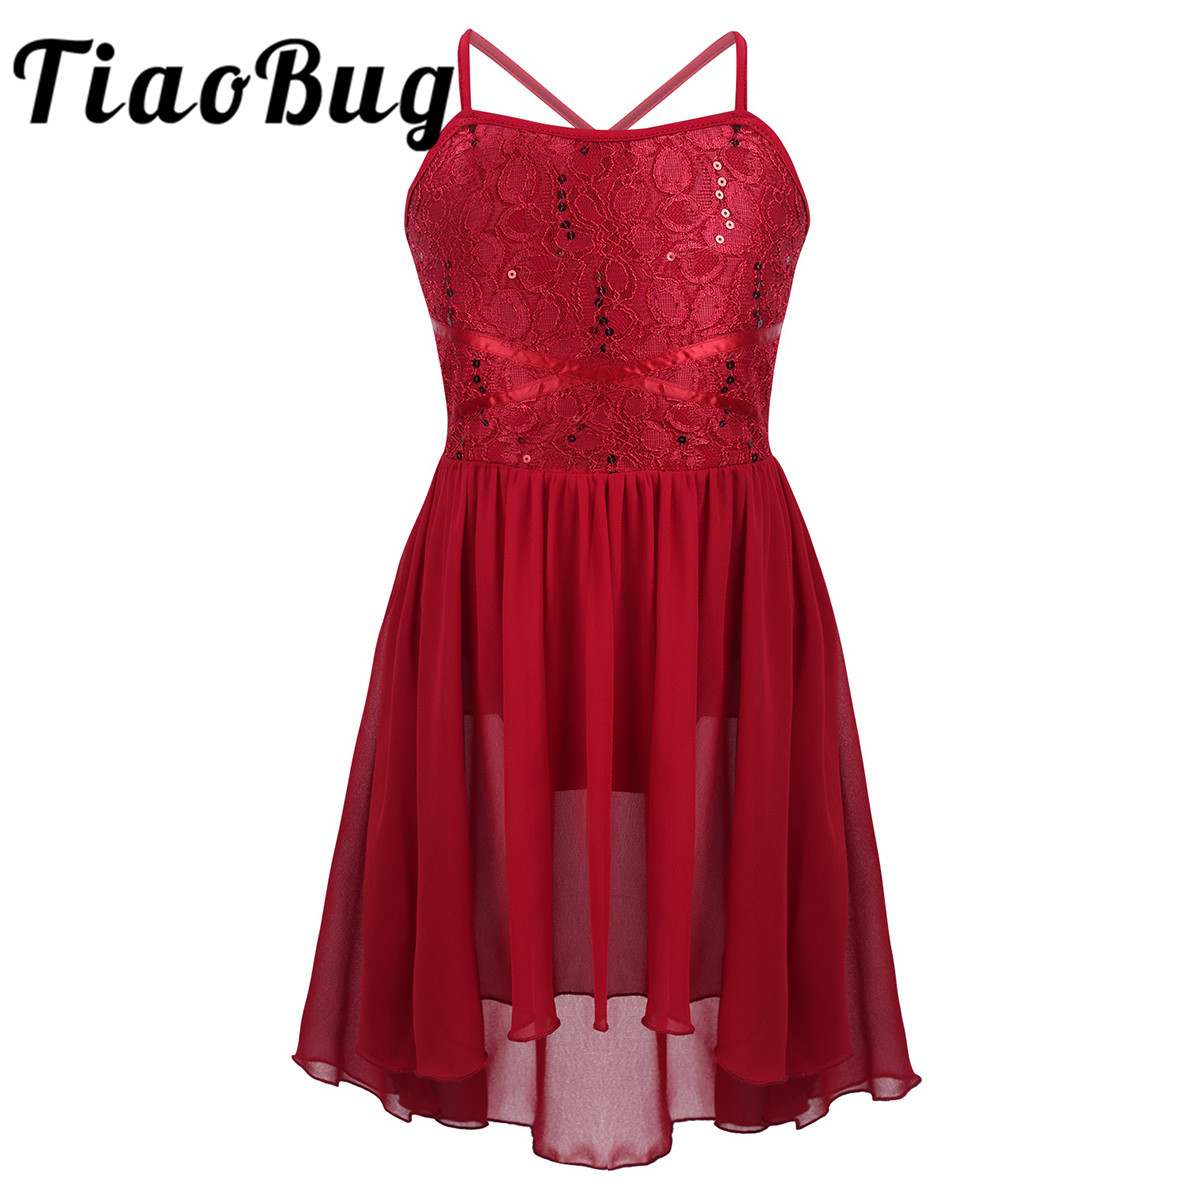 IN STOCK Stunning Red Sequin Lyrical Modern Dress All Sizes